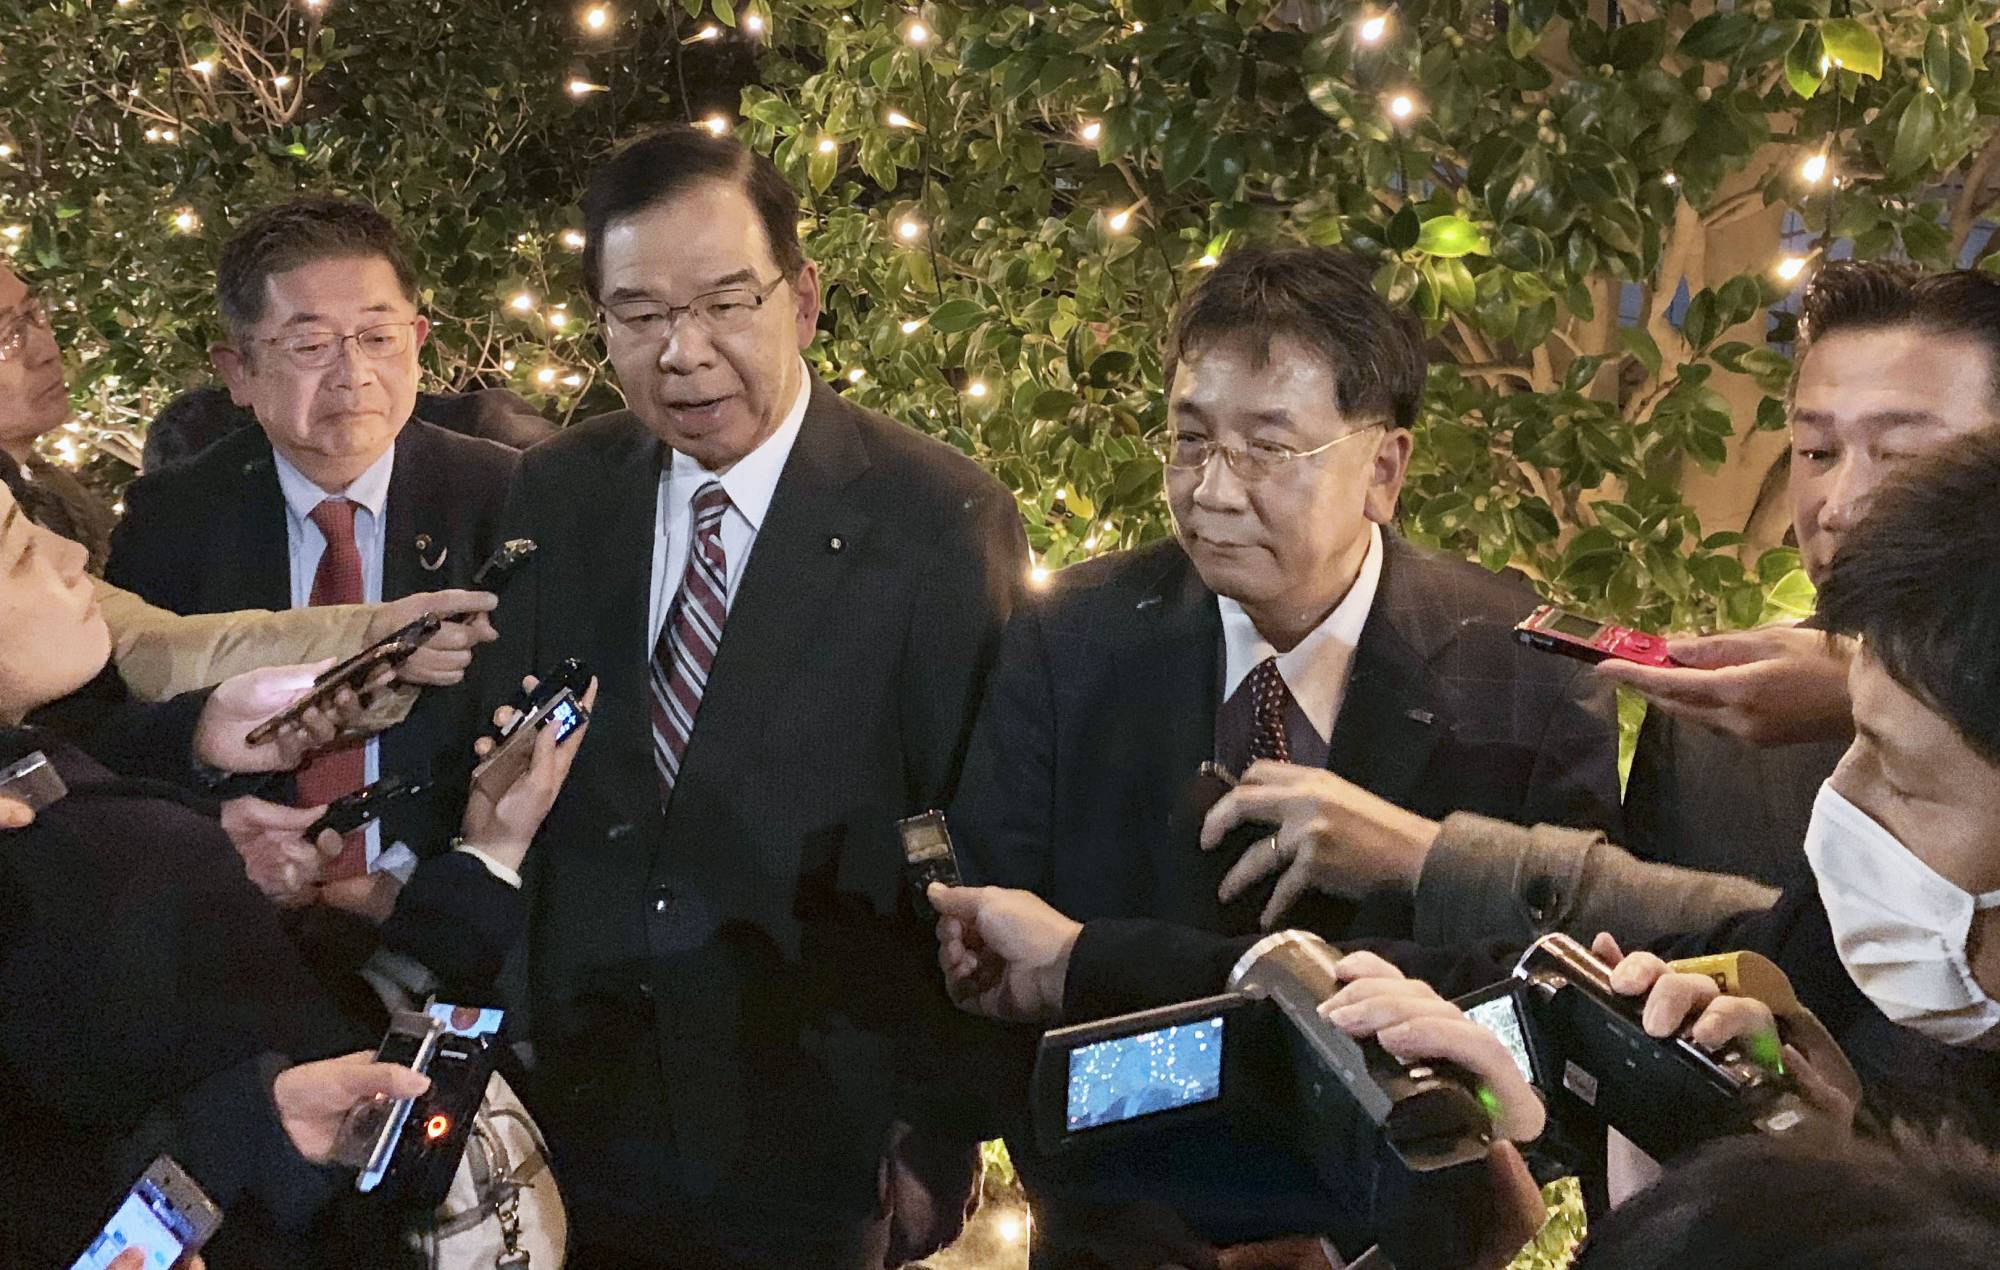 Constitutional Democratic Party of Japan leader Yukio Edano (center right) and his Japanese Communist Party counterpart Kazuo Shii in February 2020 in Tokyo | KYODO